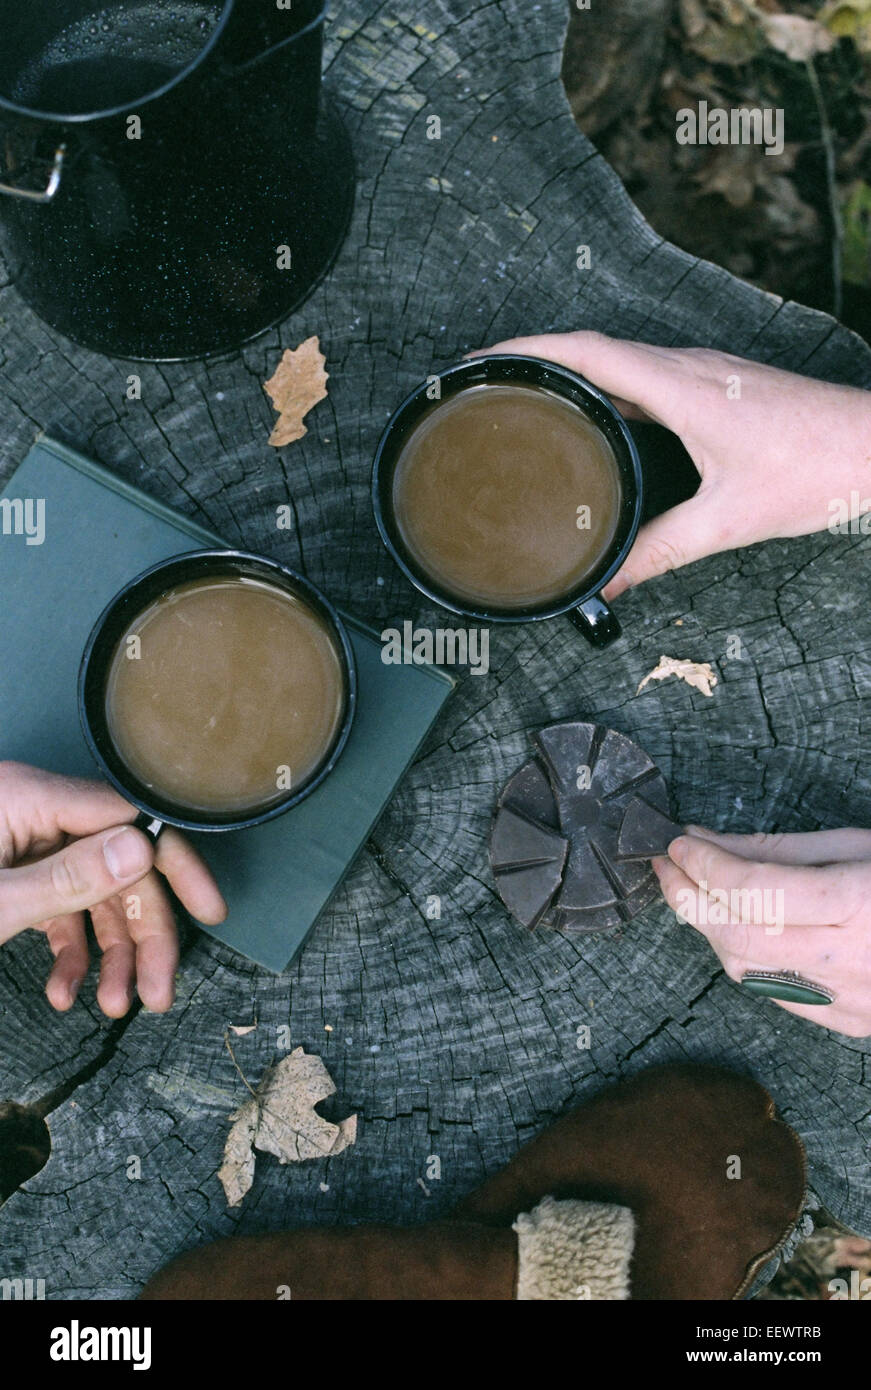 Couple having coffee in a forest, two mugs of coffee, a coffee pot and a pair of gloves on a tree trunk. Stock Photo